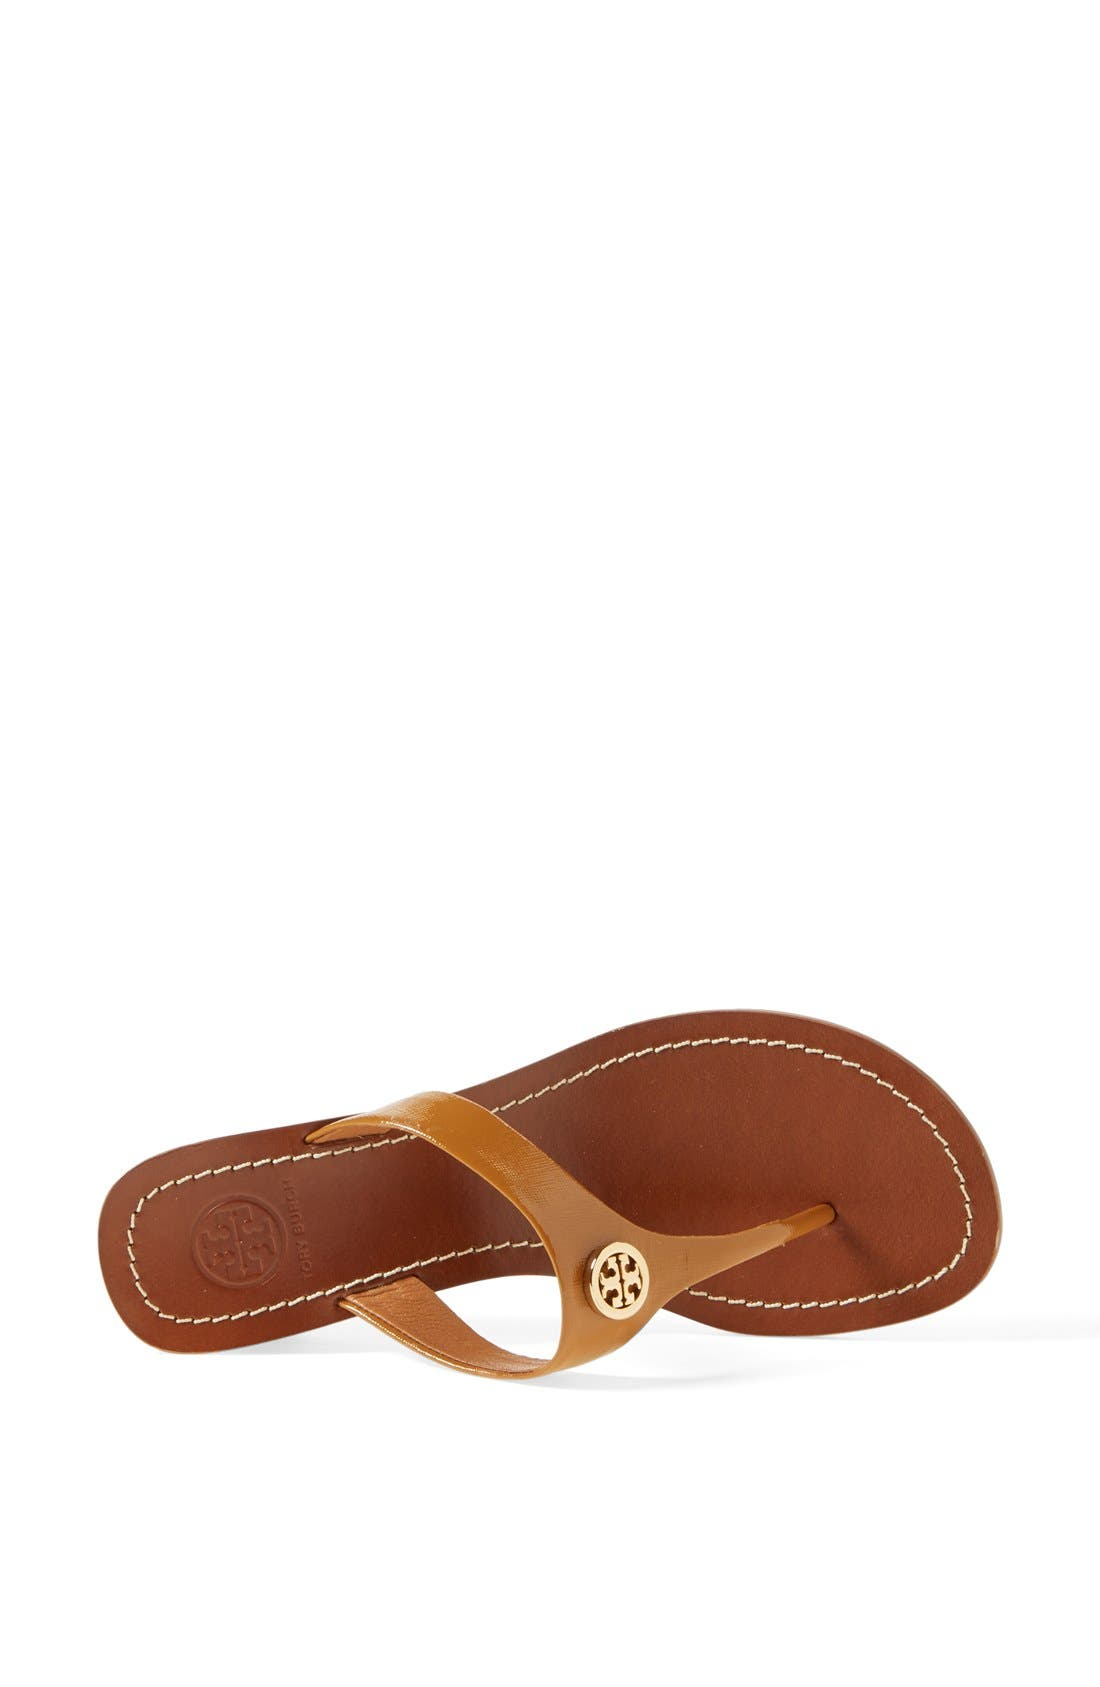 Alternate Image 3  - Tory Burch 'Cameron' Wedge Sandal (Online Only)